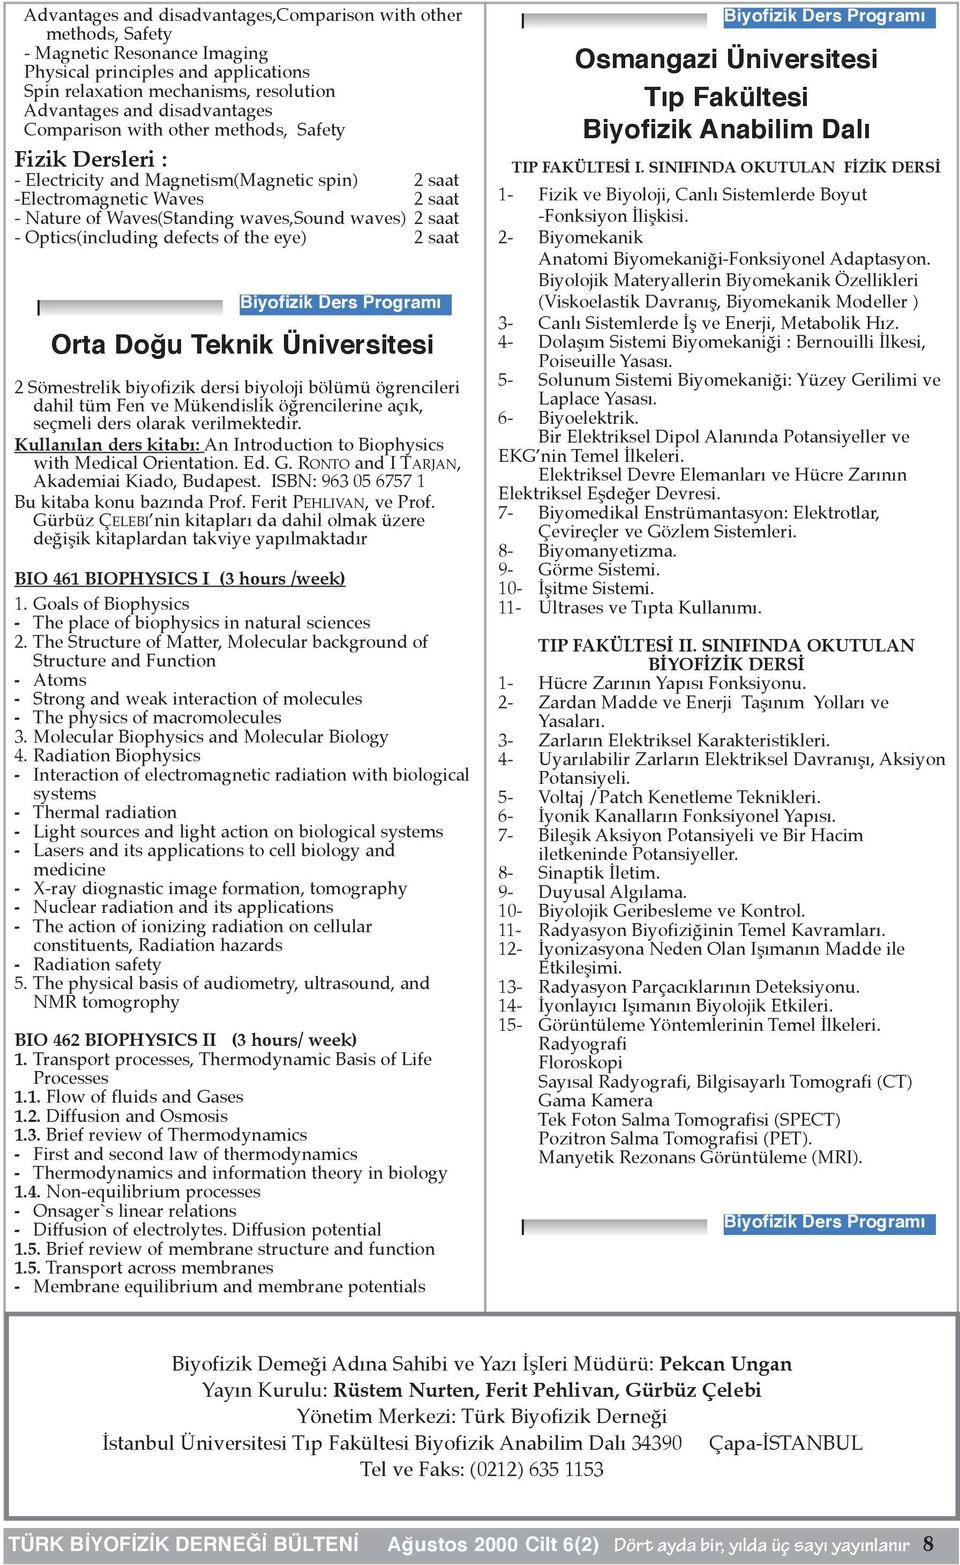 saat - Optics(including defects of the eye) 2 saat Orta Doğu Teknik Üniversitesi 2 Sömestrelik biyofizik dersi biyoloji bölümü ögrencileri dahil tüm Fen ve Mükendislik öğrencilerine açık, seçmeli